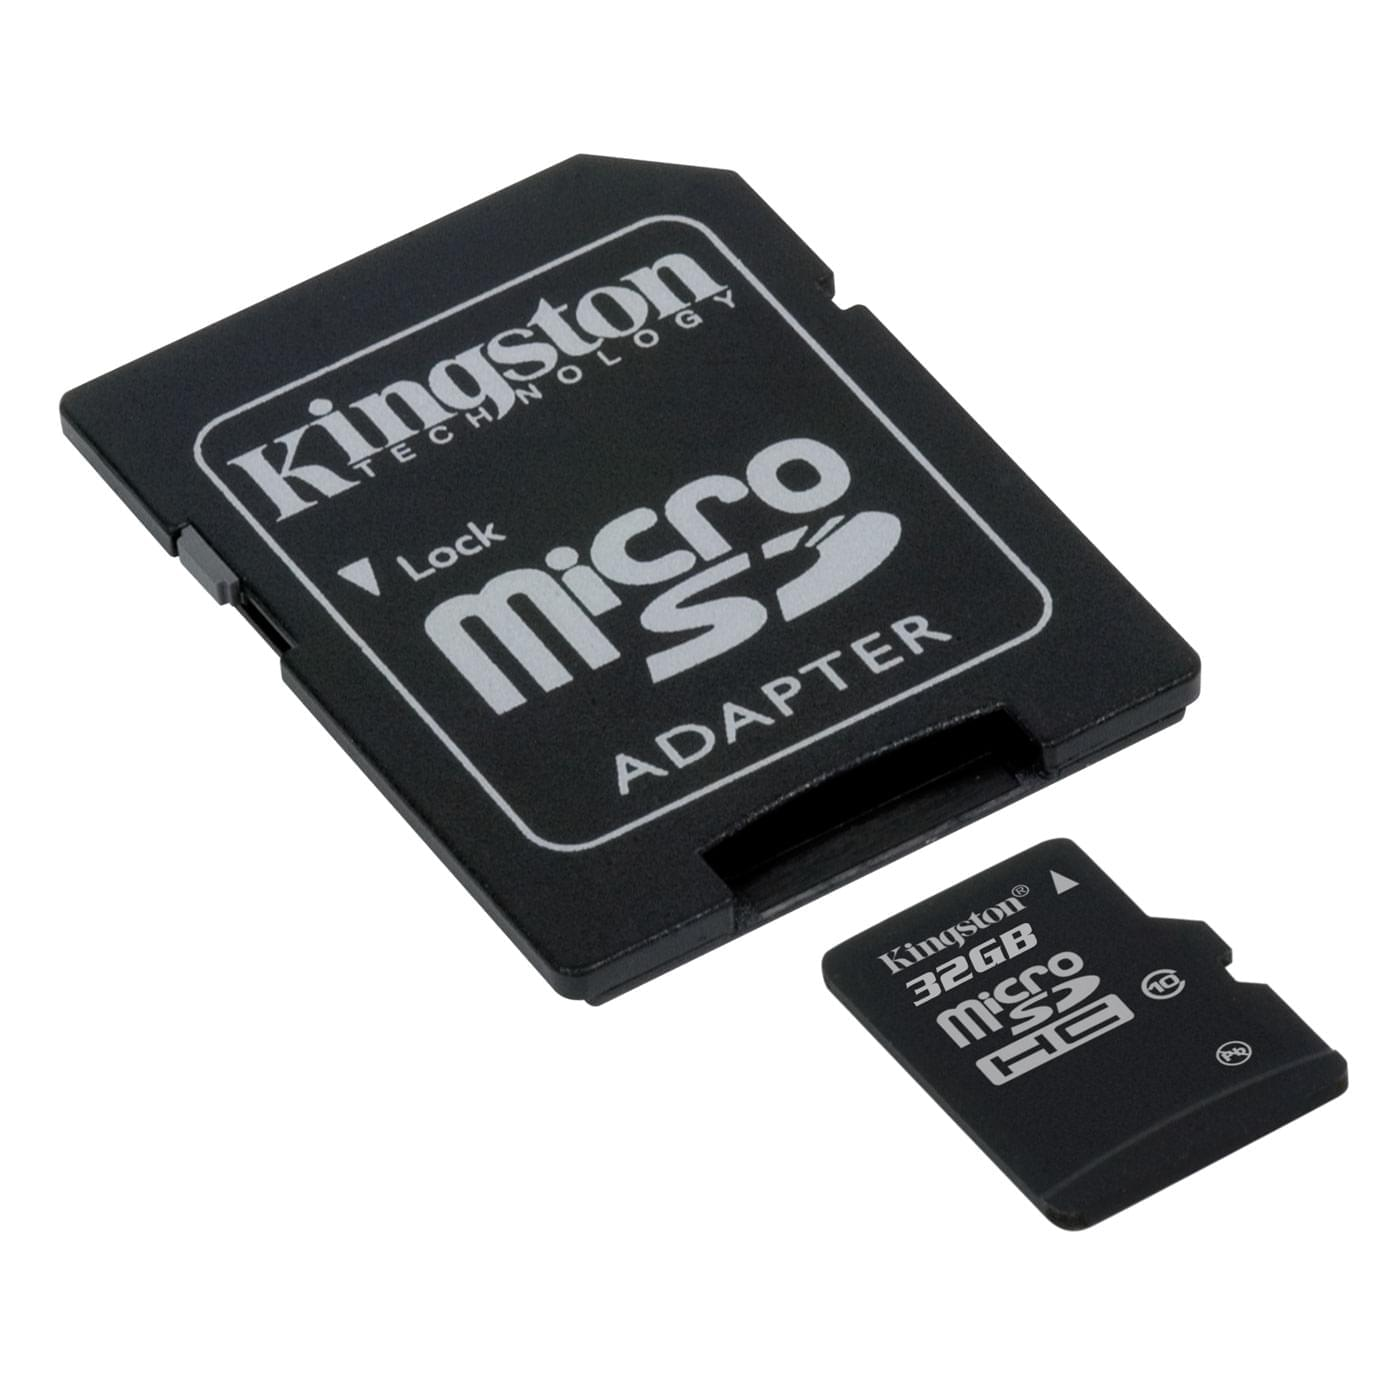 Kingston Micro SDHC 32Go SDC10/32GB class 10 + Adapt  (SDC10/32GB) - Achat / Vente Carte mémoire sur Cybertek.fr - 0